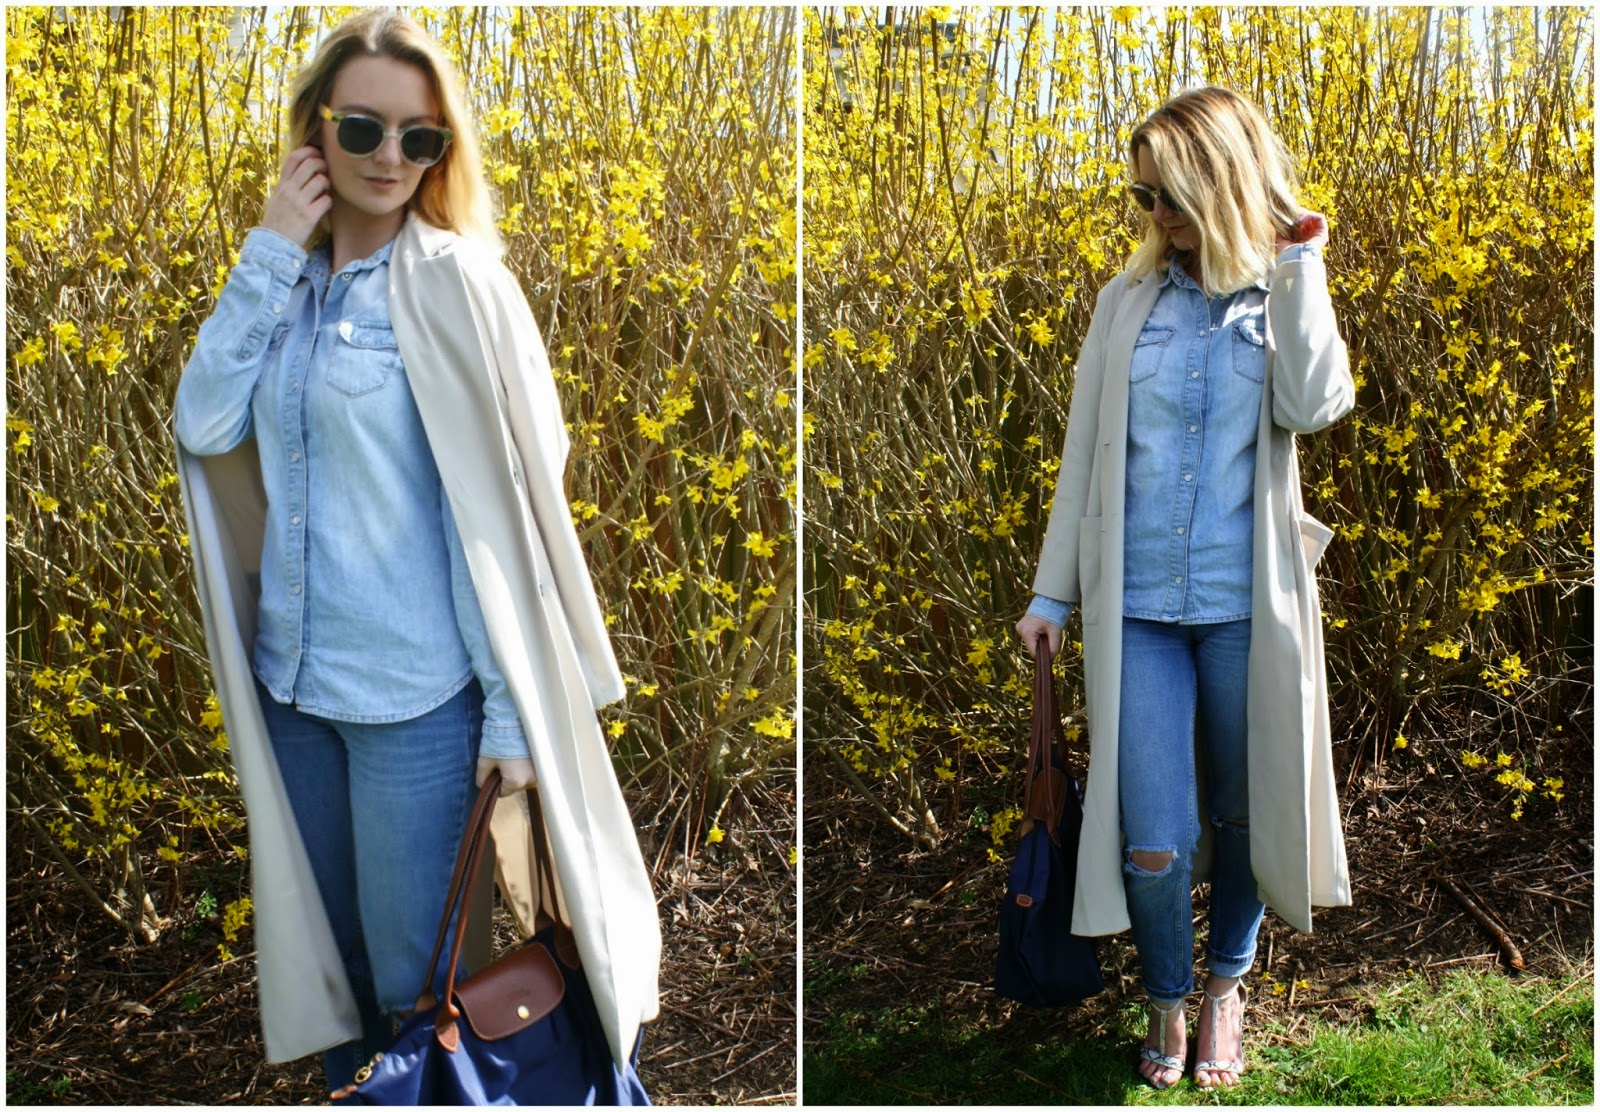 OUTFIT: Double Denim, fashion blogger, styling, stylist, denim, ss15 trends, style advice, mode madeleine, blogger, personal style, longchamp, olivia burton